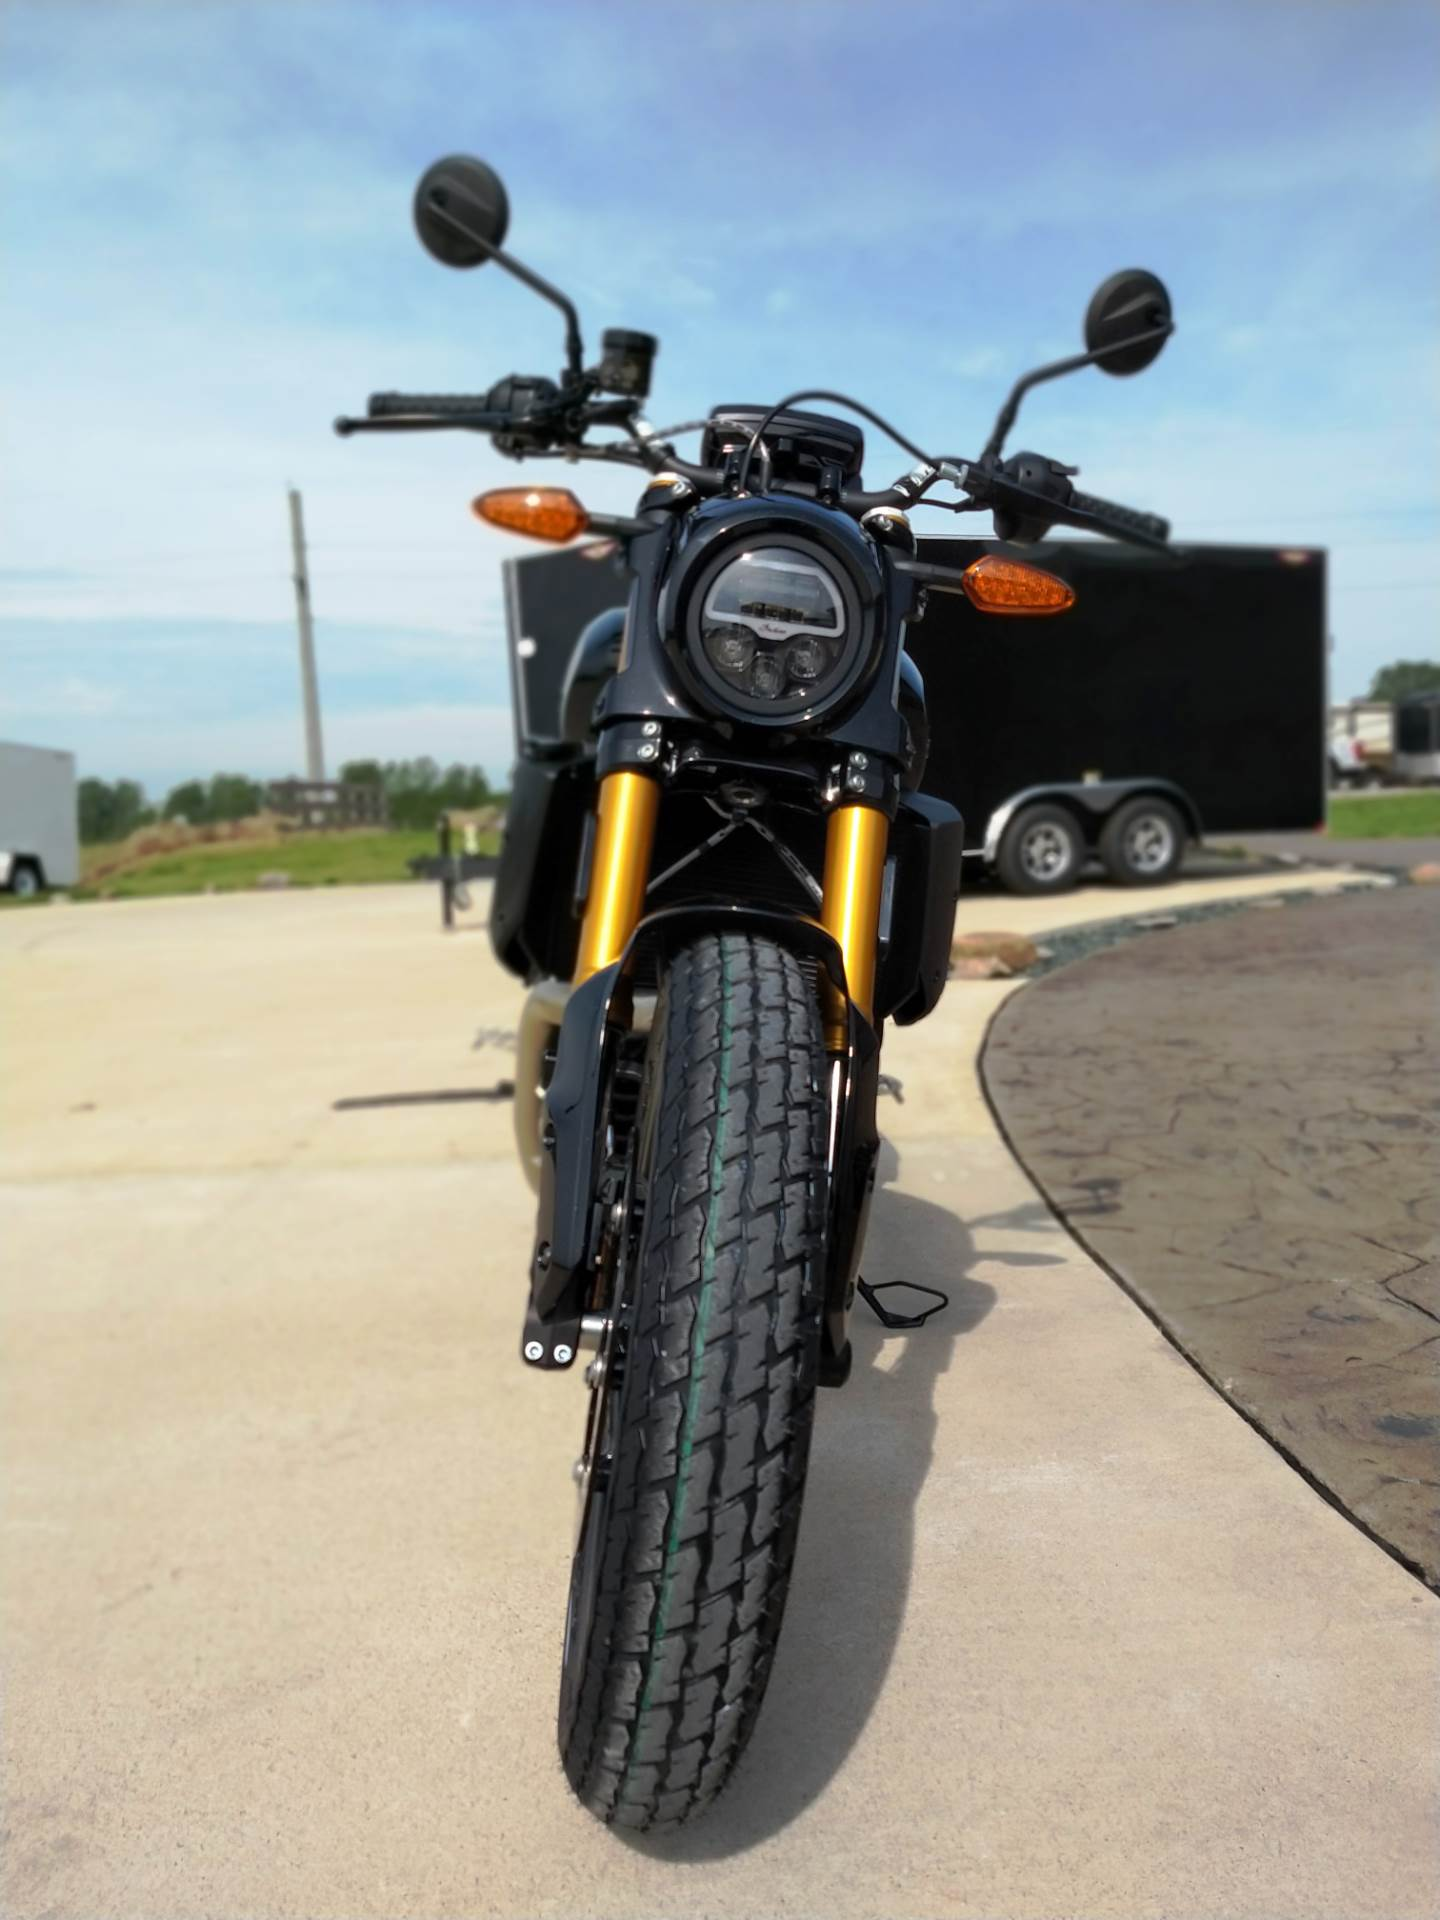 2019 Indian FTR™ 1200 S in Ottumwa, Iowa - Photo 2